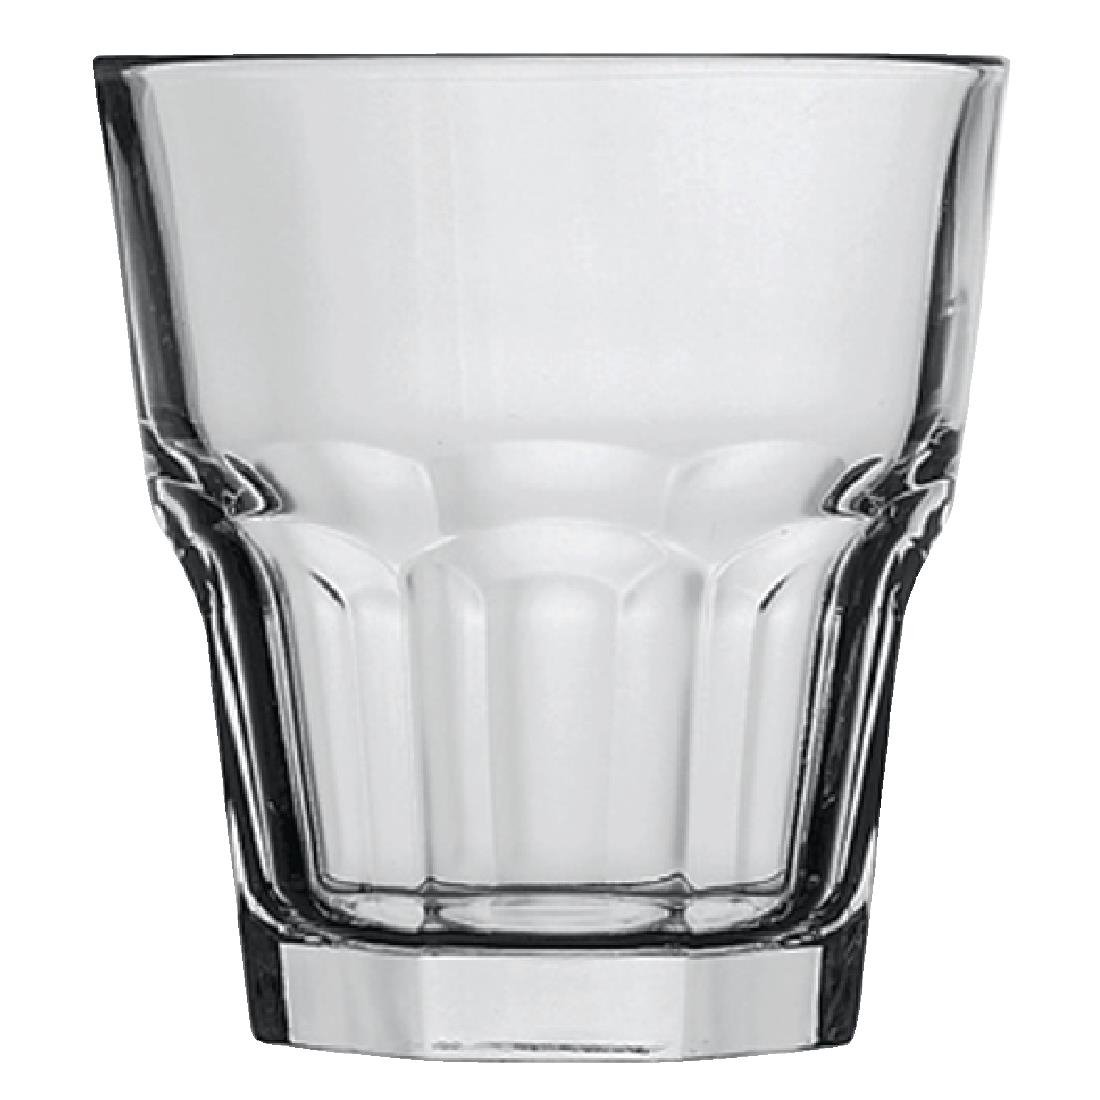 Utopia Casablanca Tumblers 280ml CE Marked (Pack of 12)